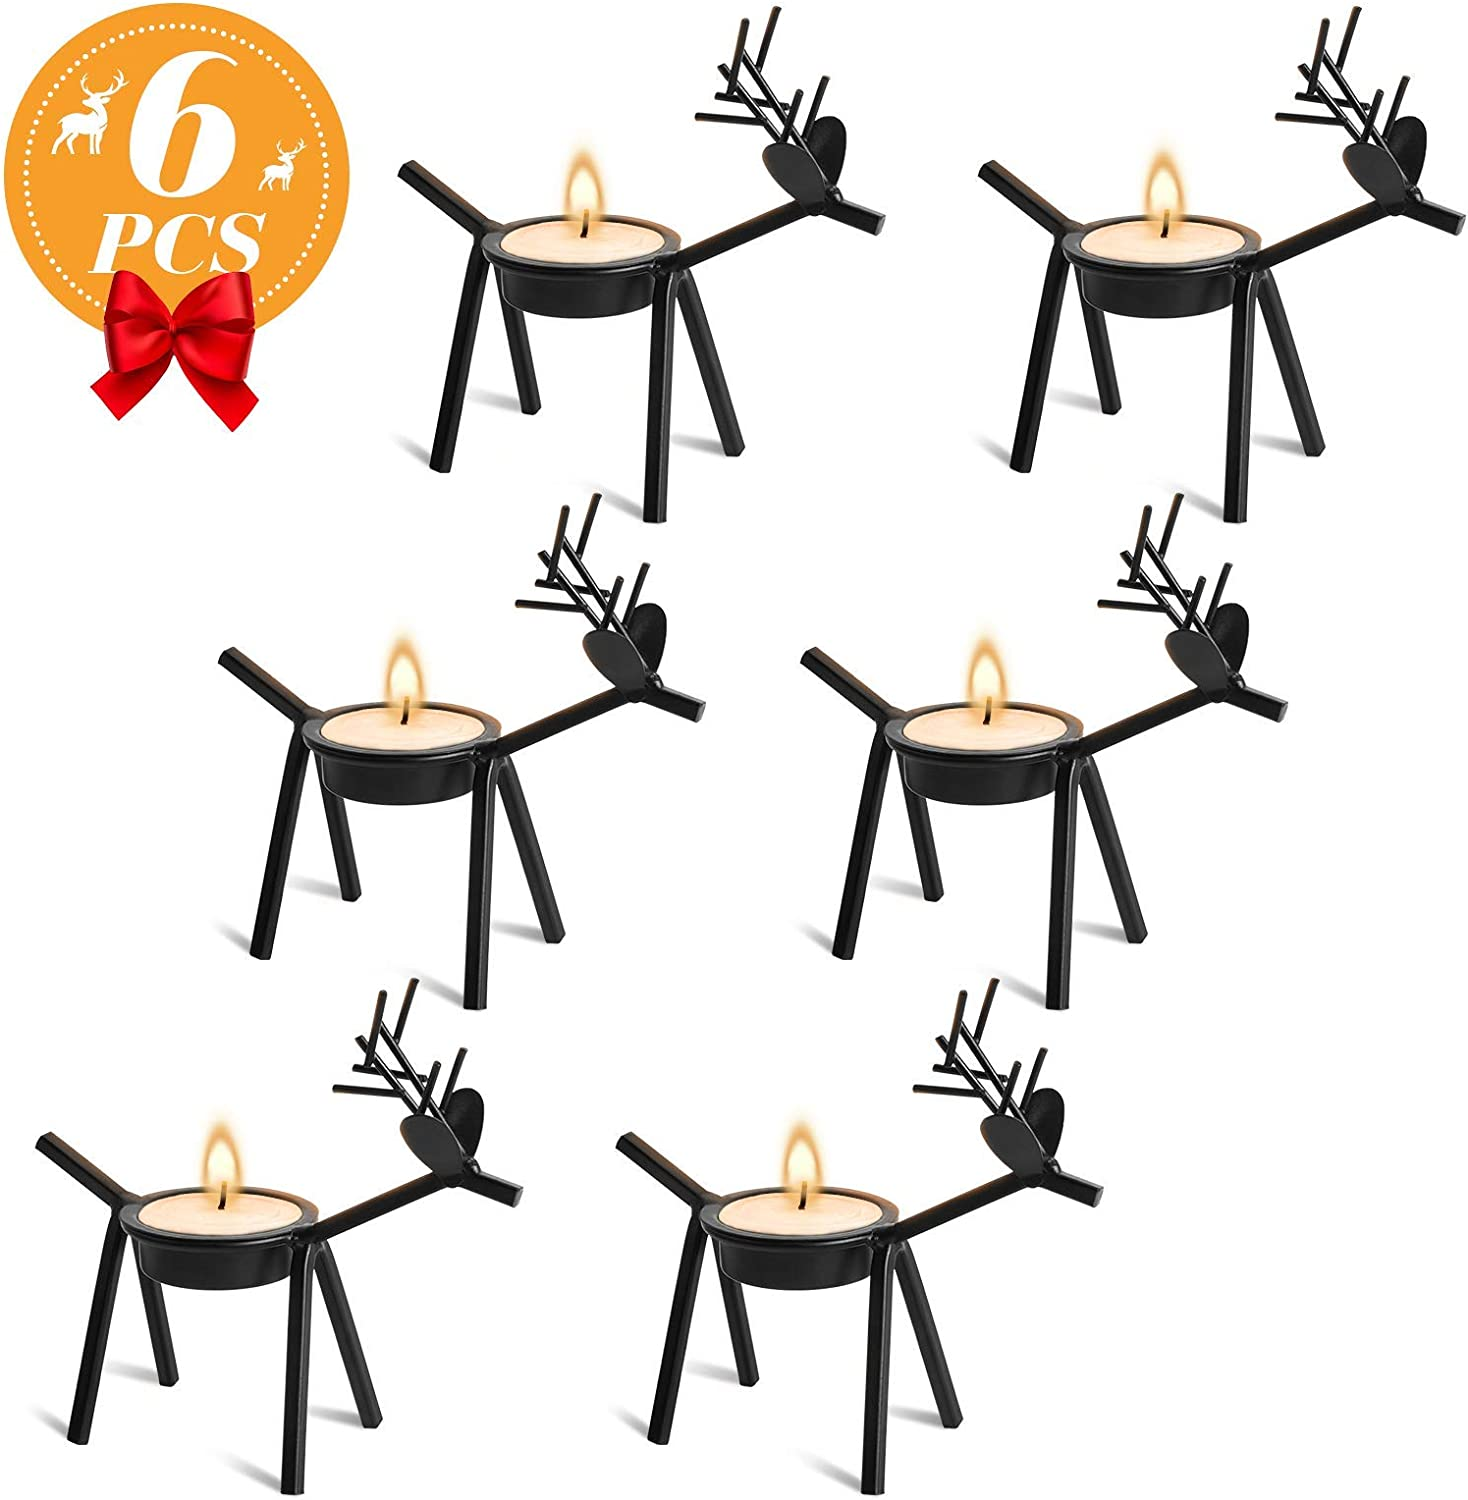 Ponwec 6Pcs Reindeer Tea Light Candle Holders,Black Metal Tea Light Stands for Christmas Home,Kitchen,Table Decorations